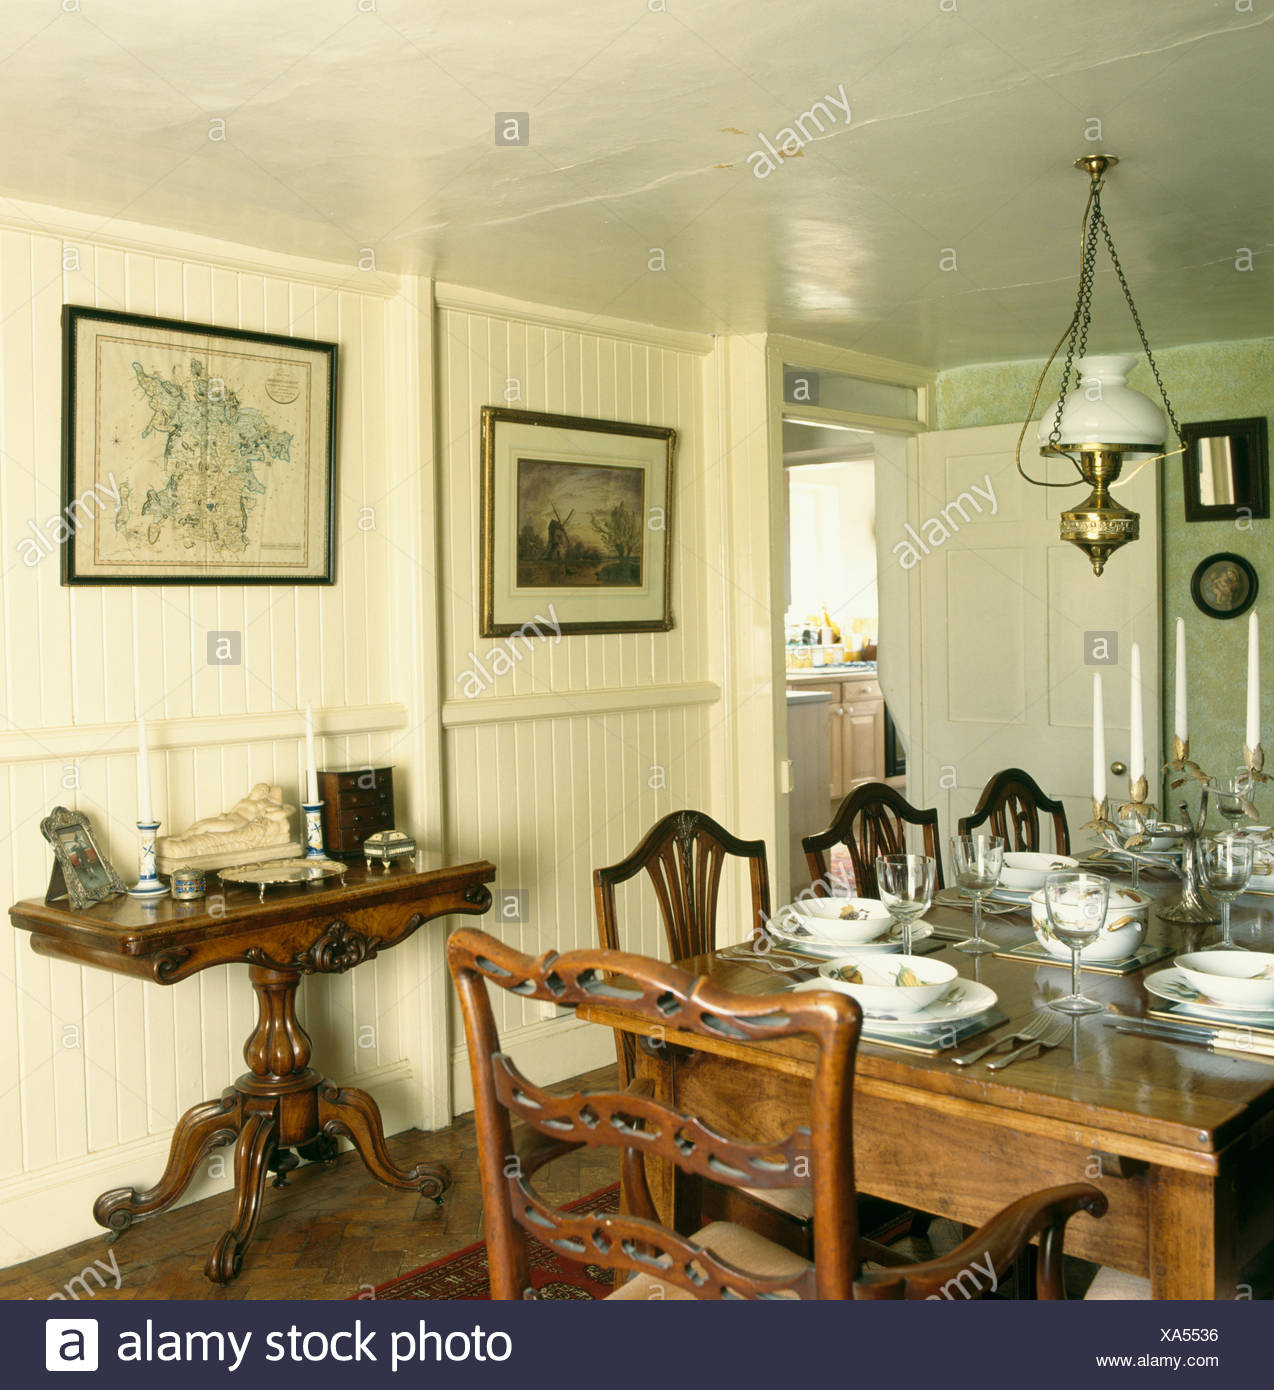 Antique Table And Chairs In Neutral Dining Room With Console Table And  Panelled Cream Walls